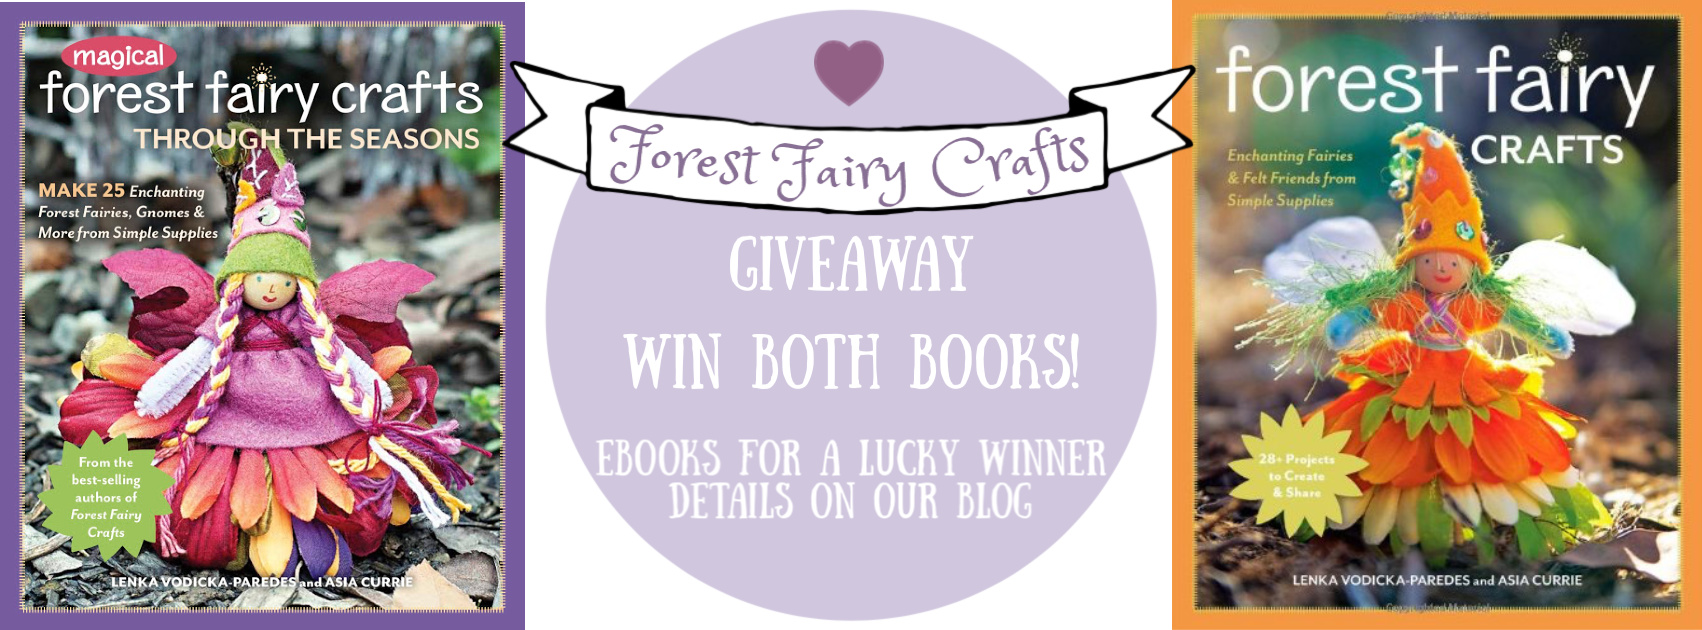 Forest Fairy Crafts Giveaway